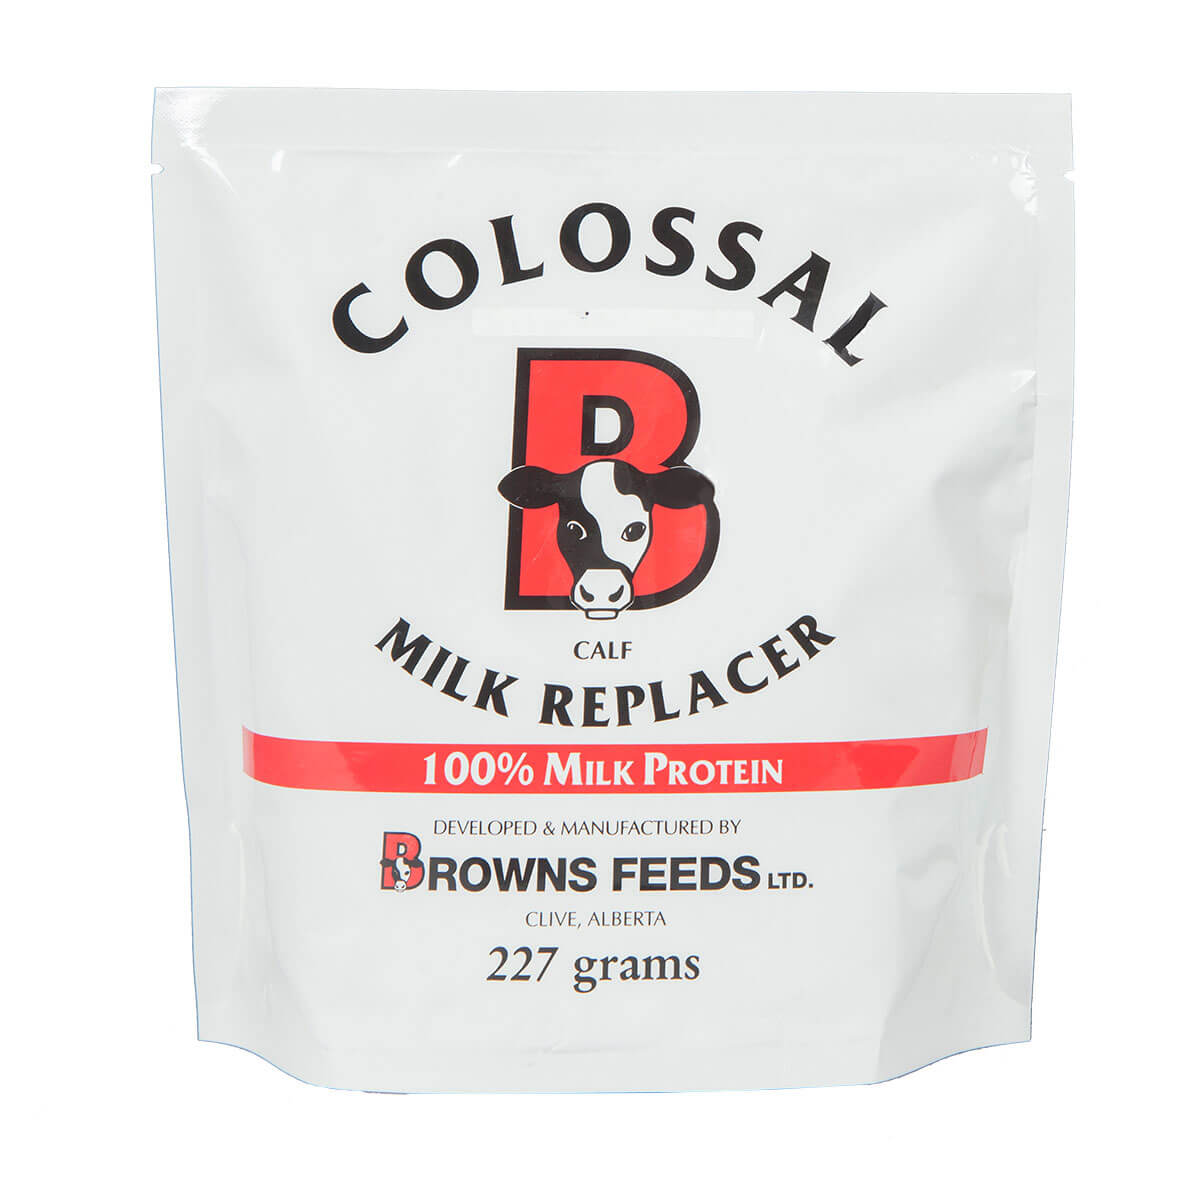 Colossal Milk Replacer - 227g